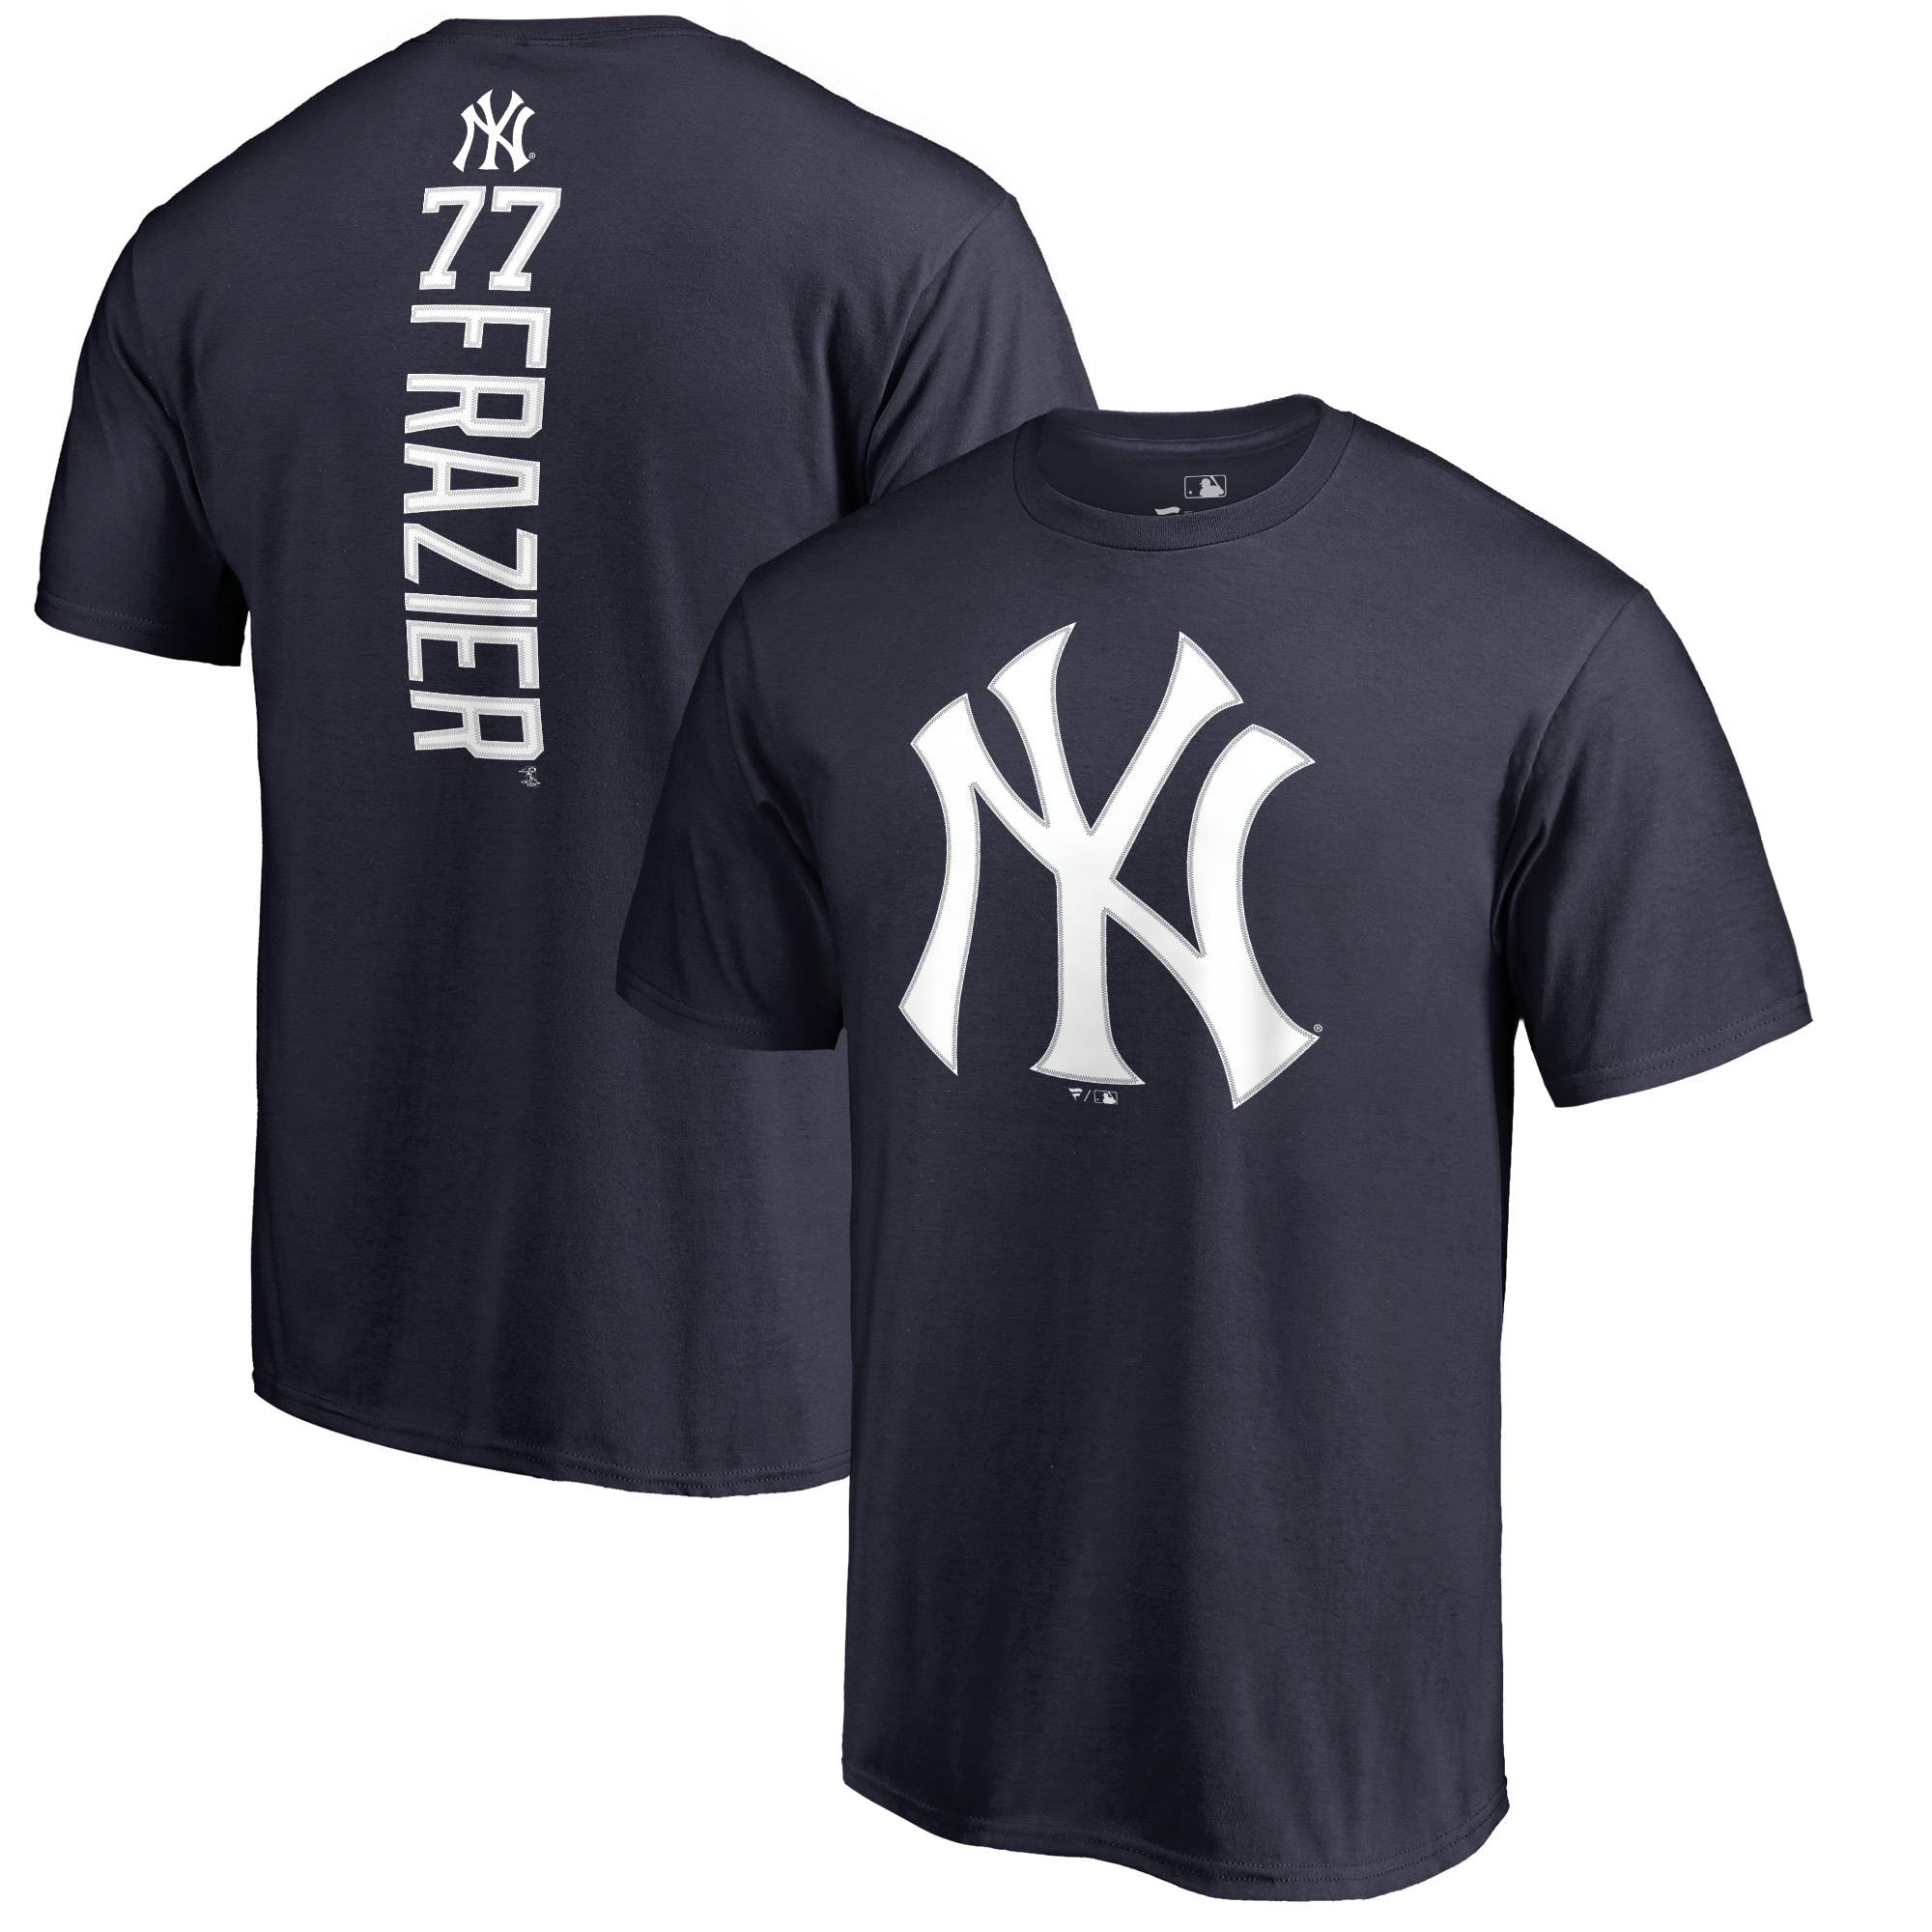 Clint Frazier New York Yankees Fanatics Branded Backer T-Shirt - Navy